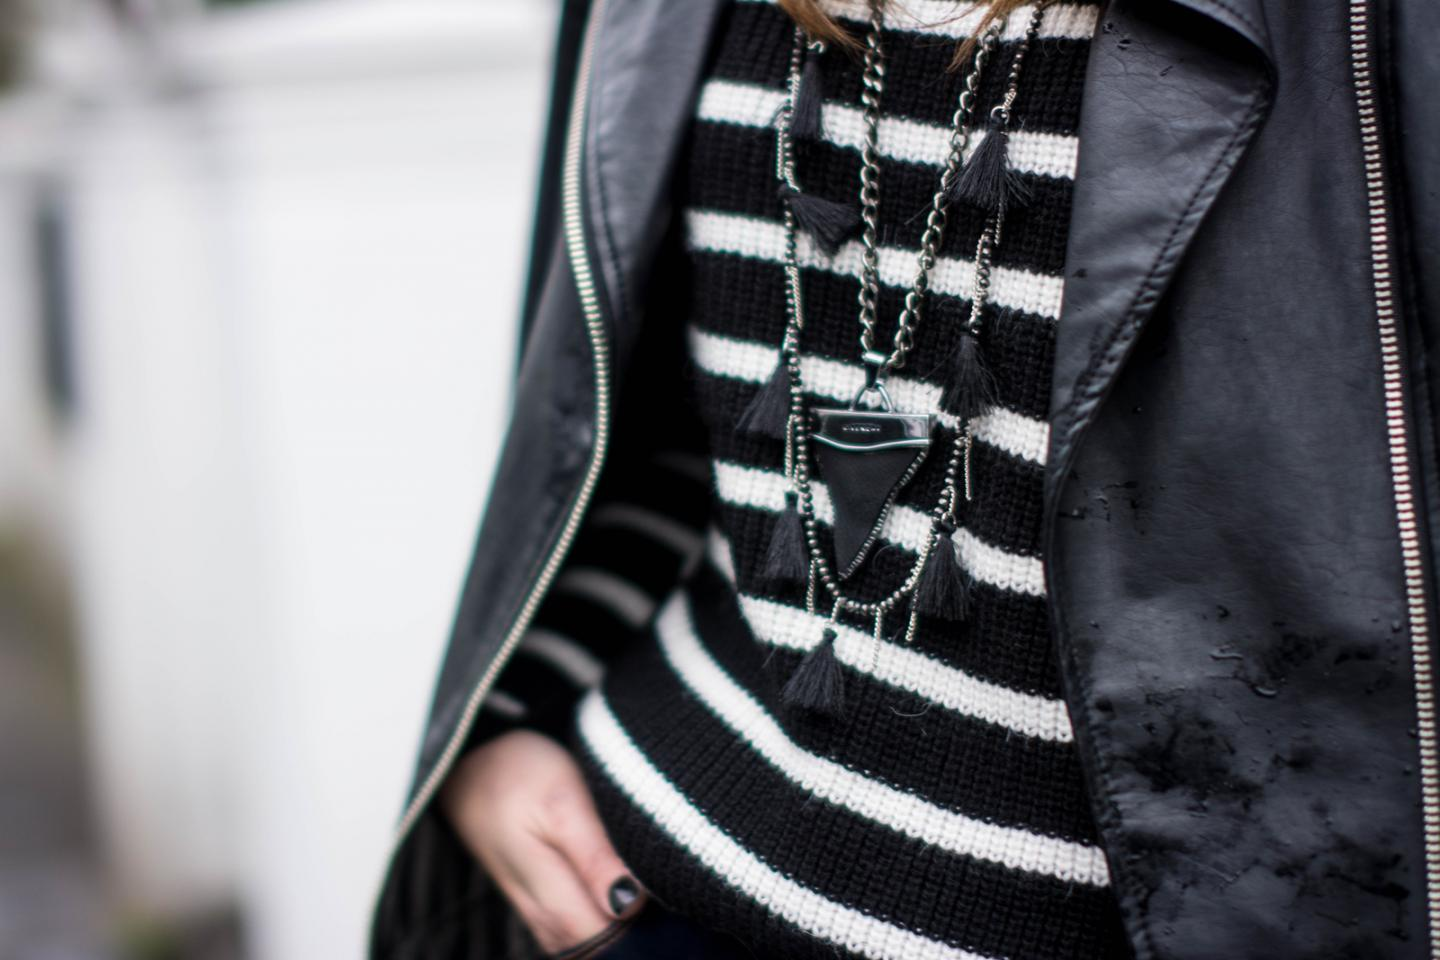 EJSTYLE - Zara black white striped jumper sweater, leather biker jacket, Wallis black tassle necklace, Givenchy shark tooth necklace, OOTD, outfit details